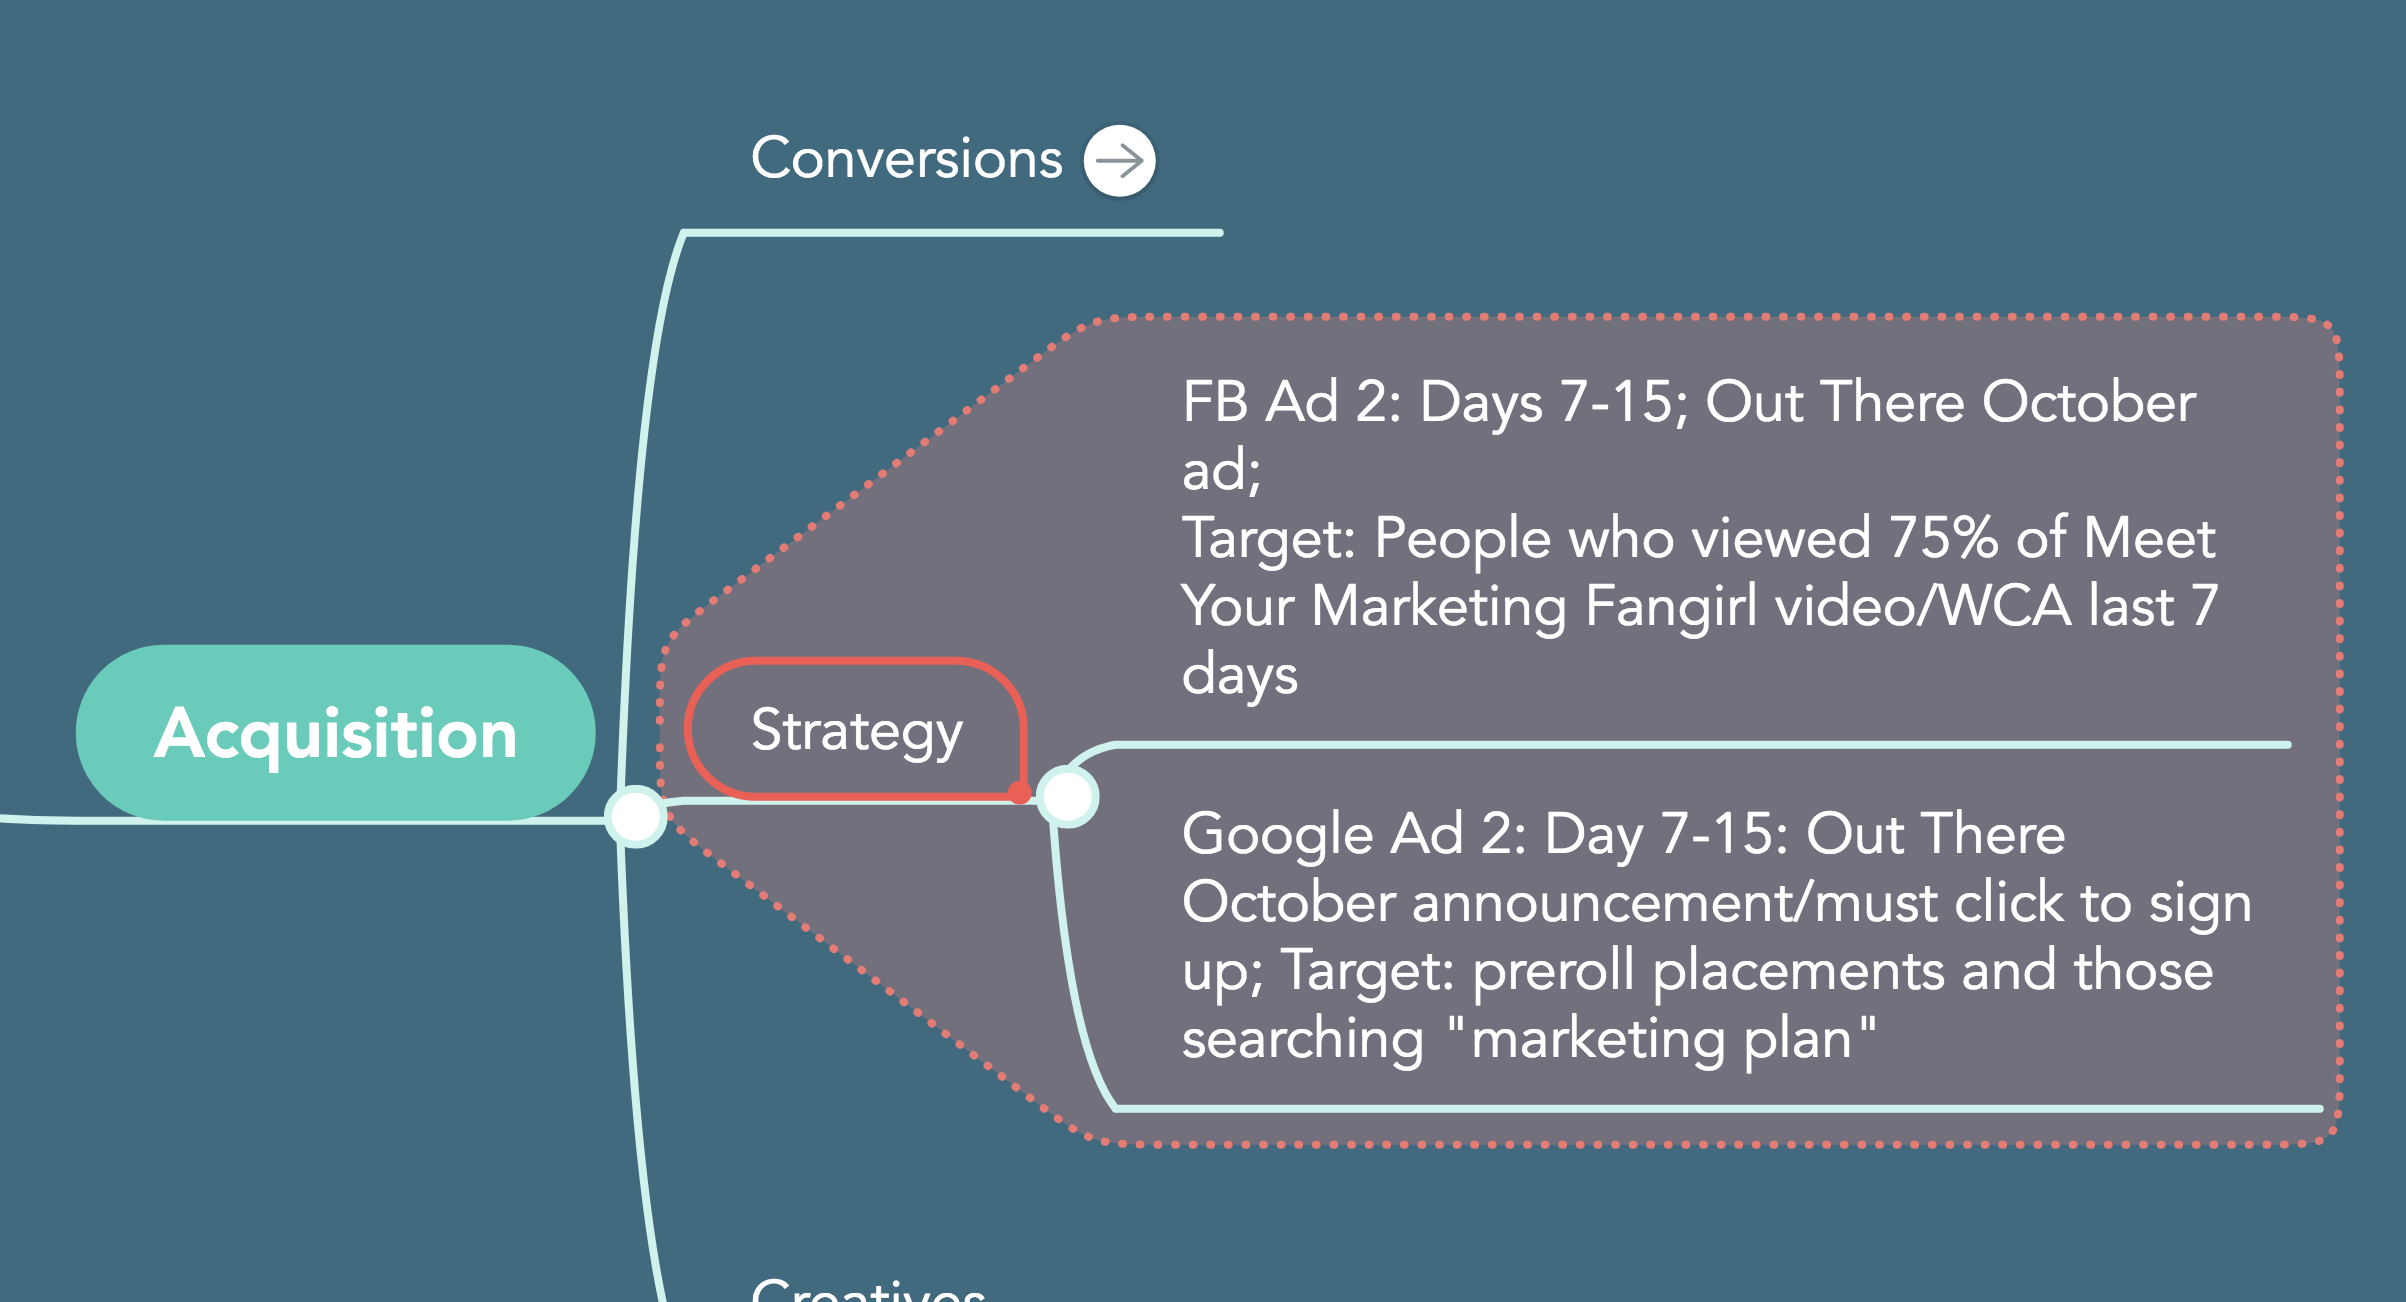 strategy acquisition customer life cycle MindMeister sales funnel facebook advertising google advertising